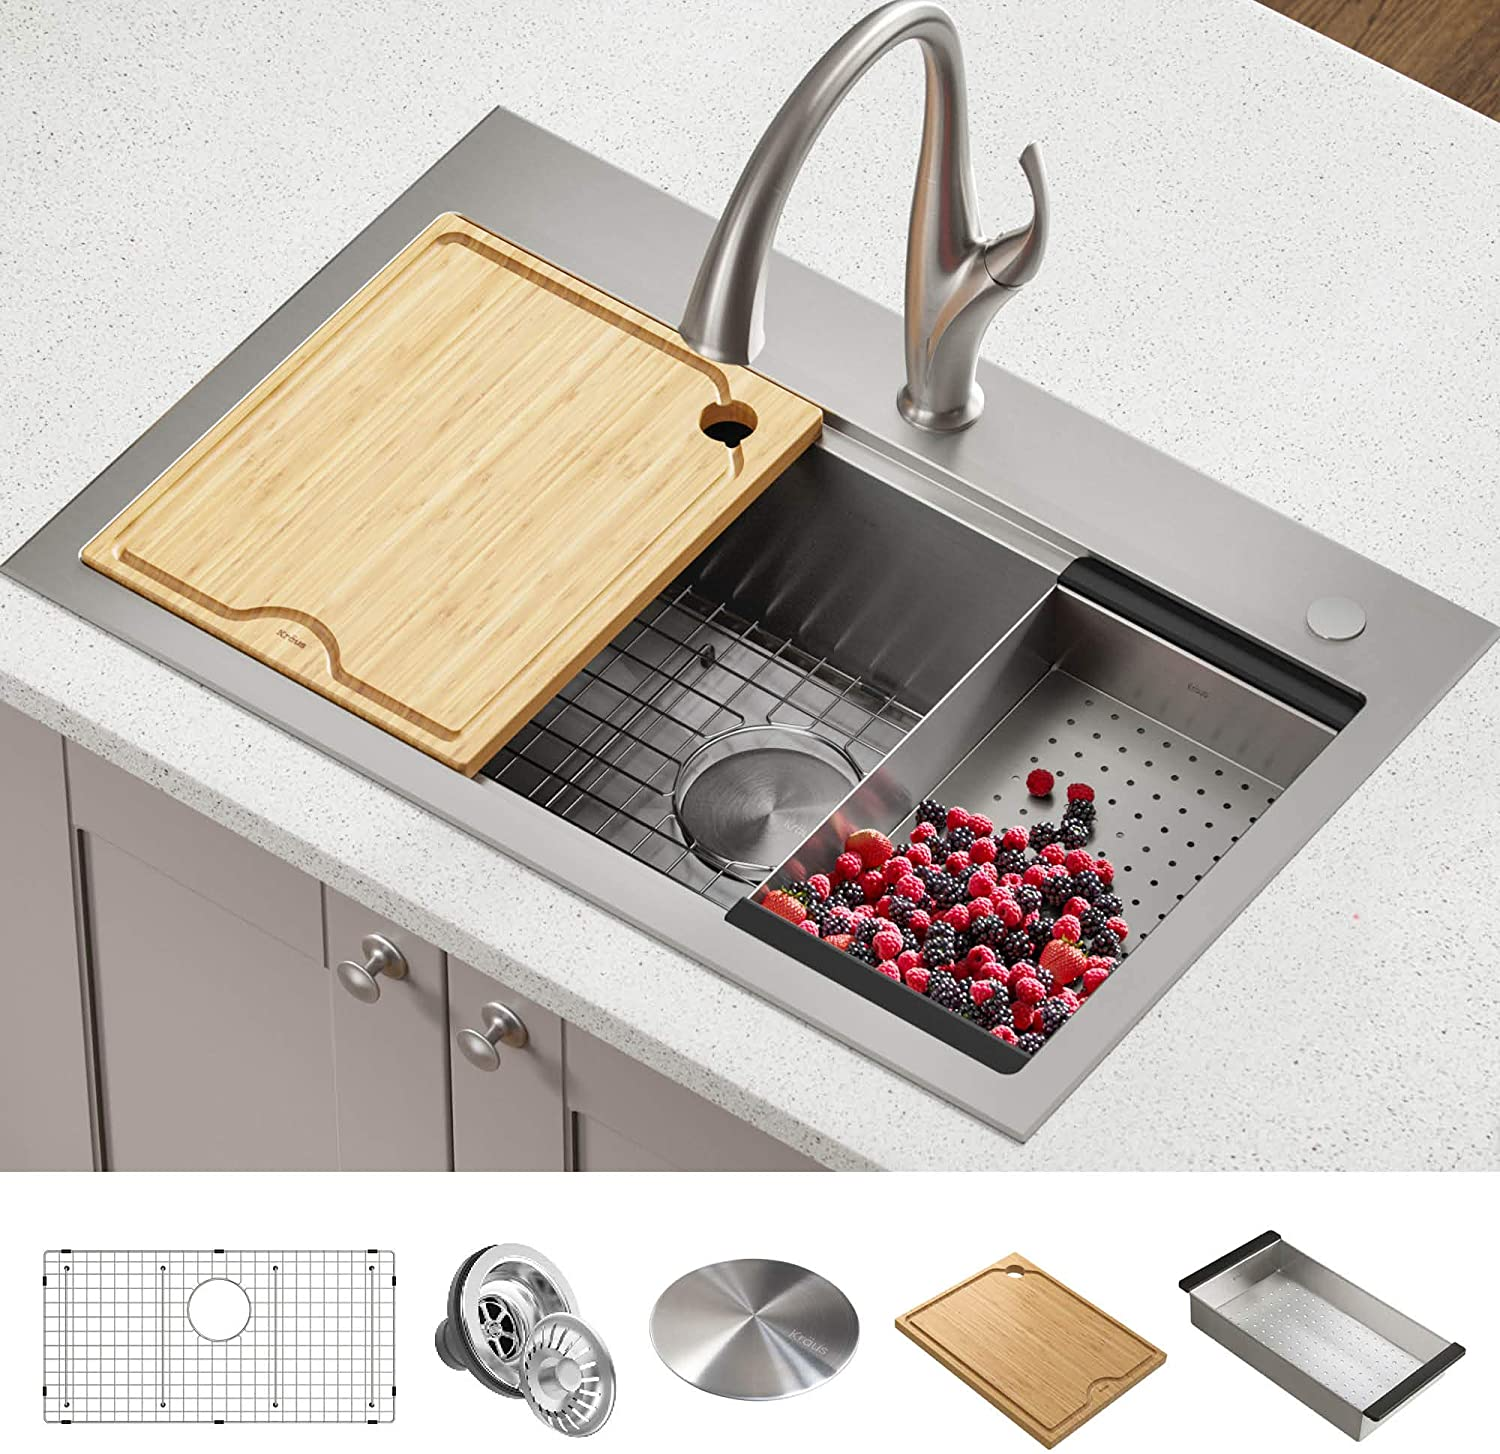 Kraus KWT300-32 Kore Workstation 32-inch Drop-In or Undermount Single Bowl Kitchen Sink with Accessories (Pack of 5), 32 Inch, Stainless Steel